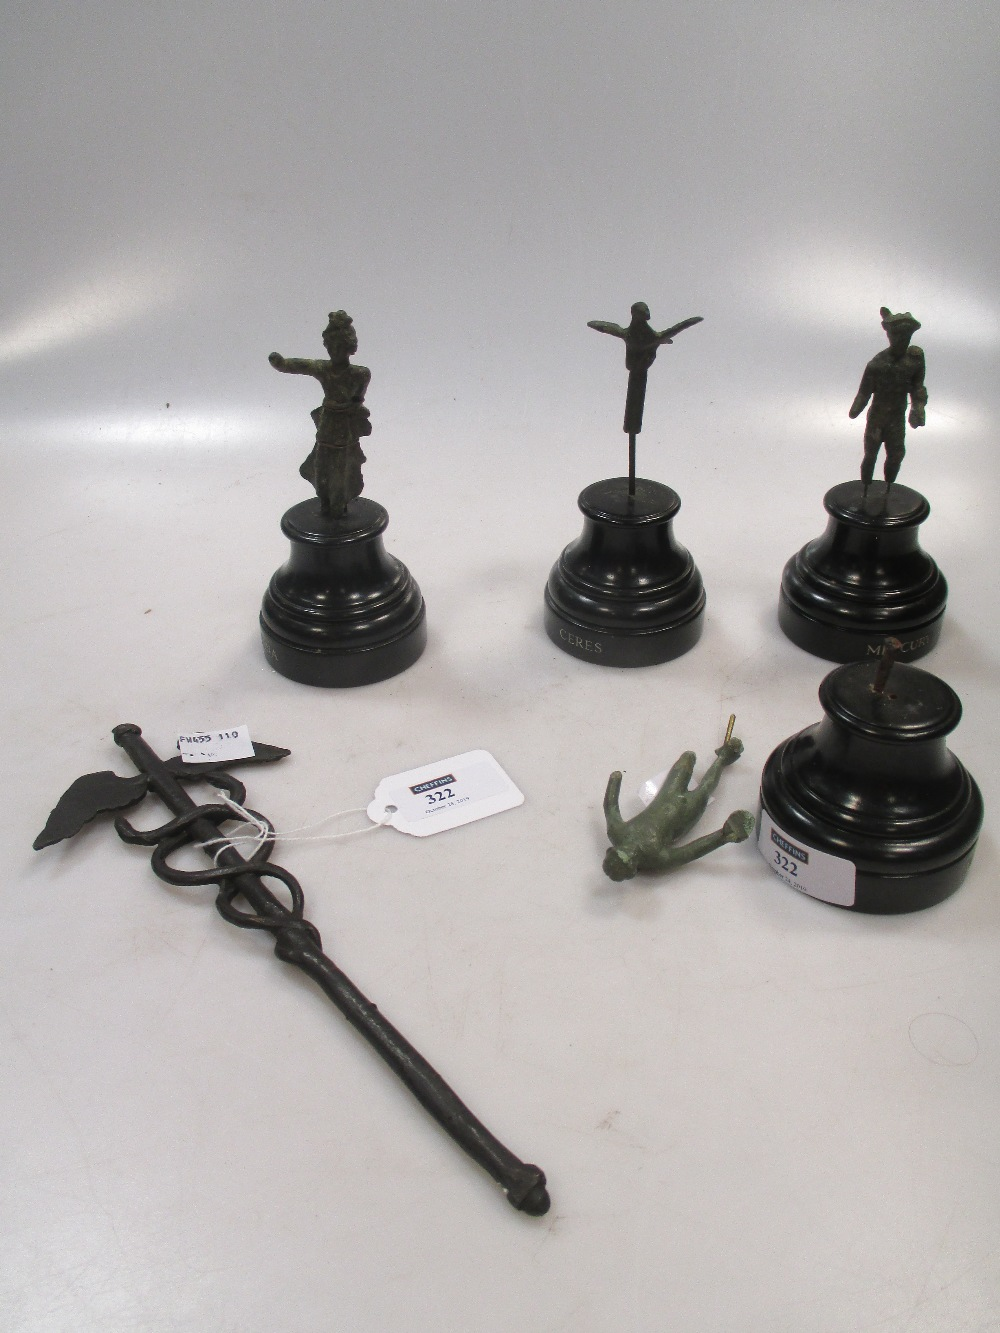 Lot 322 - A Roman bronze figure of Mercury 6cm high together with two similar figures, an eagle, a snake